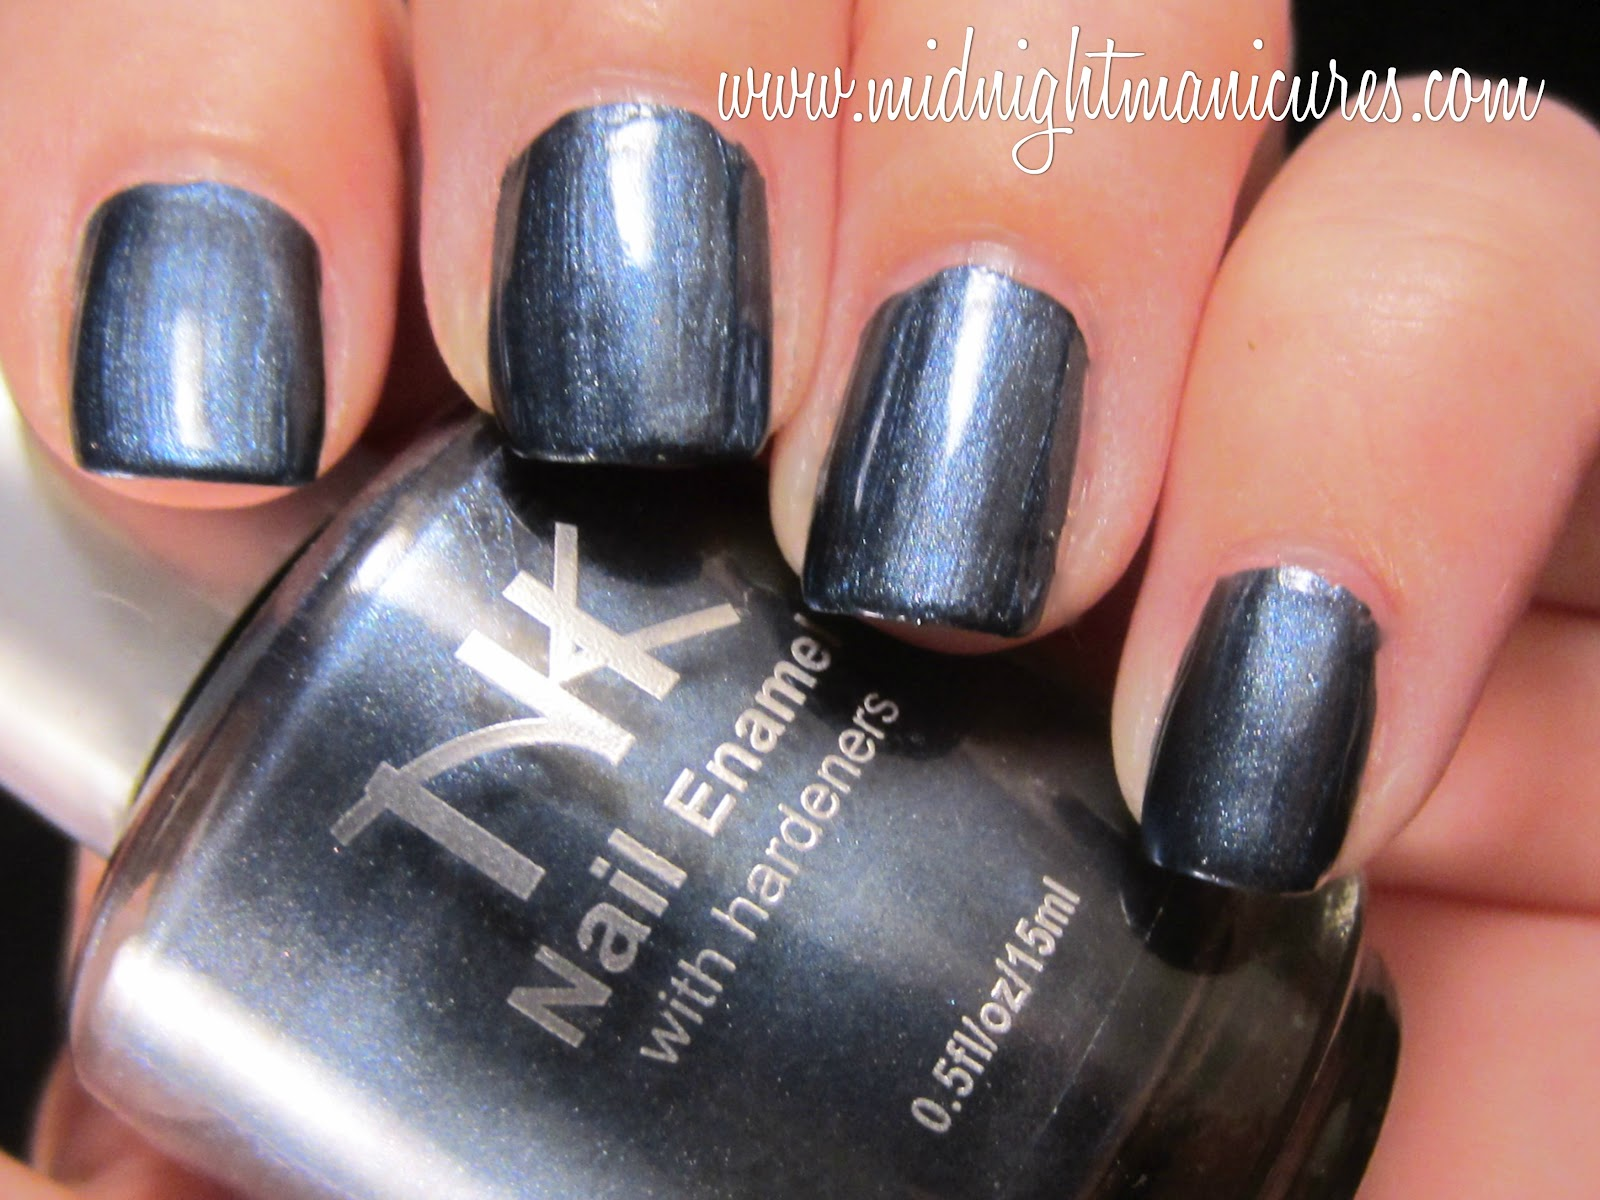 NK Nail Enamel | Midnight Manicures